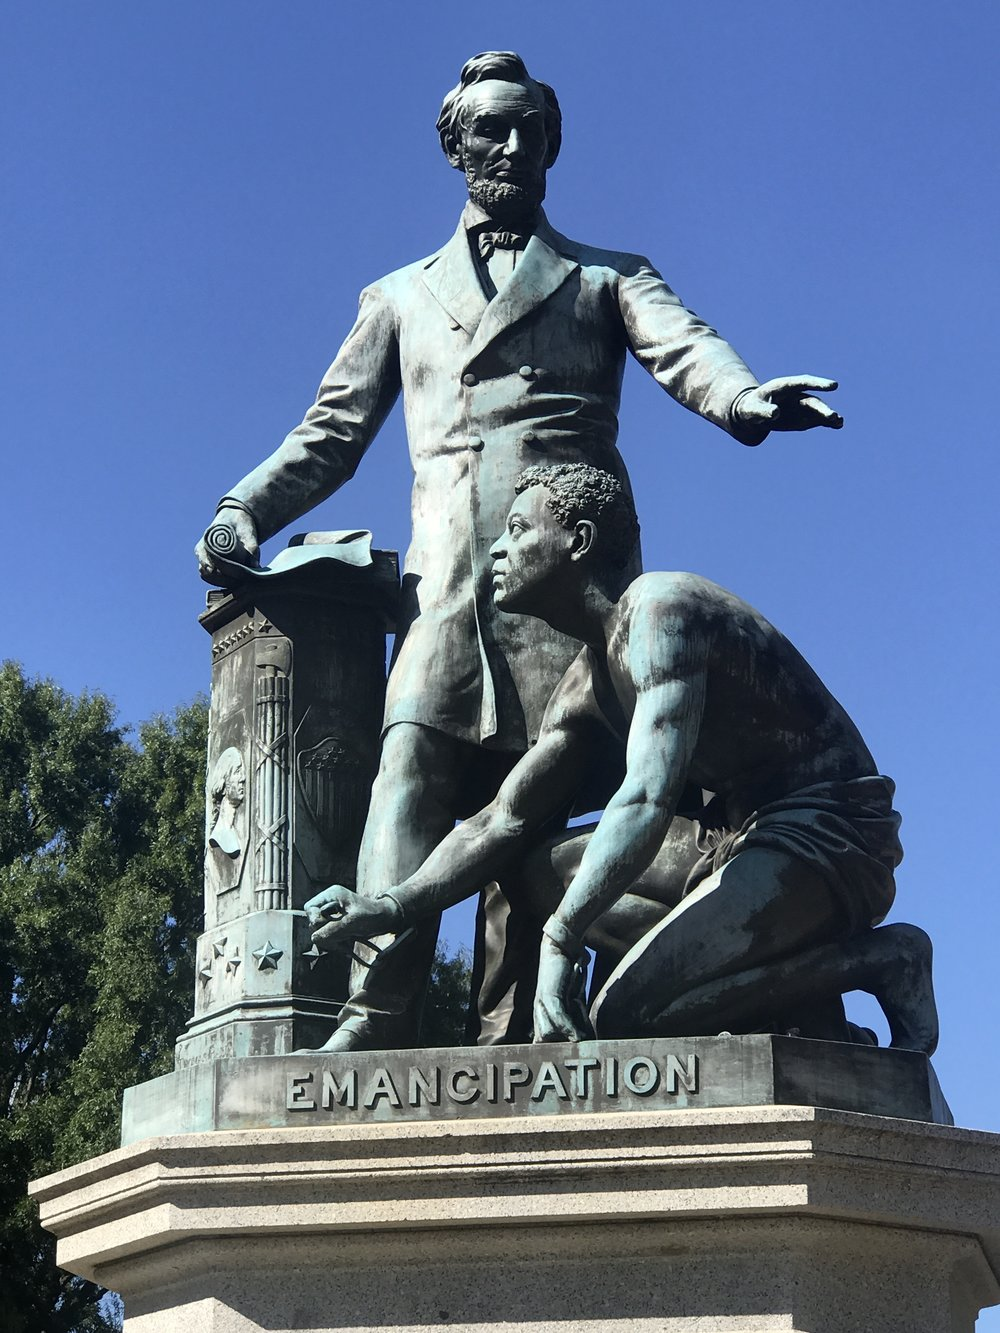 The Emancipation Memorial in Washington, D.C. An exact replica sits in Boston's Lincoln Square.